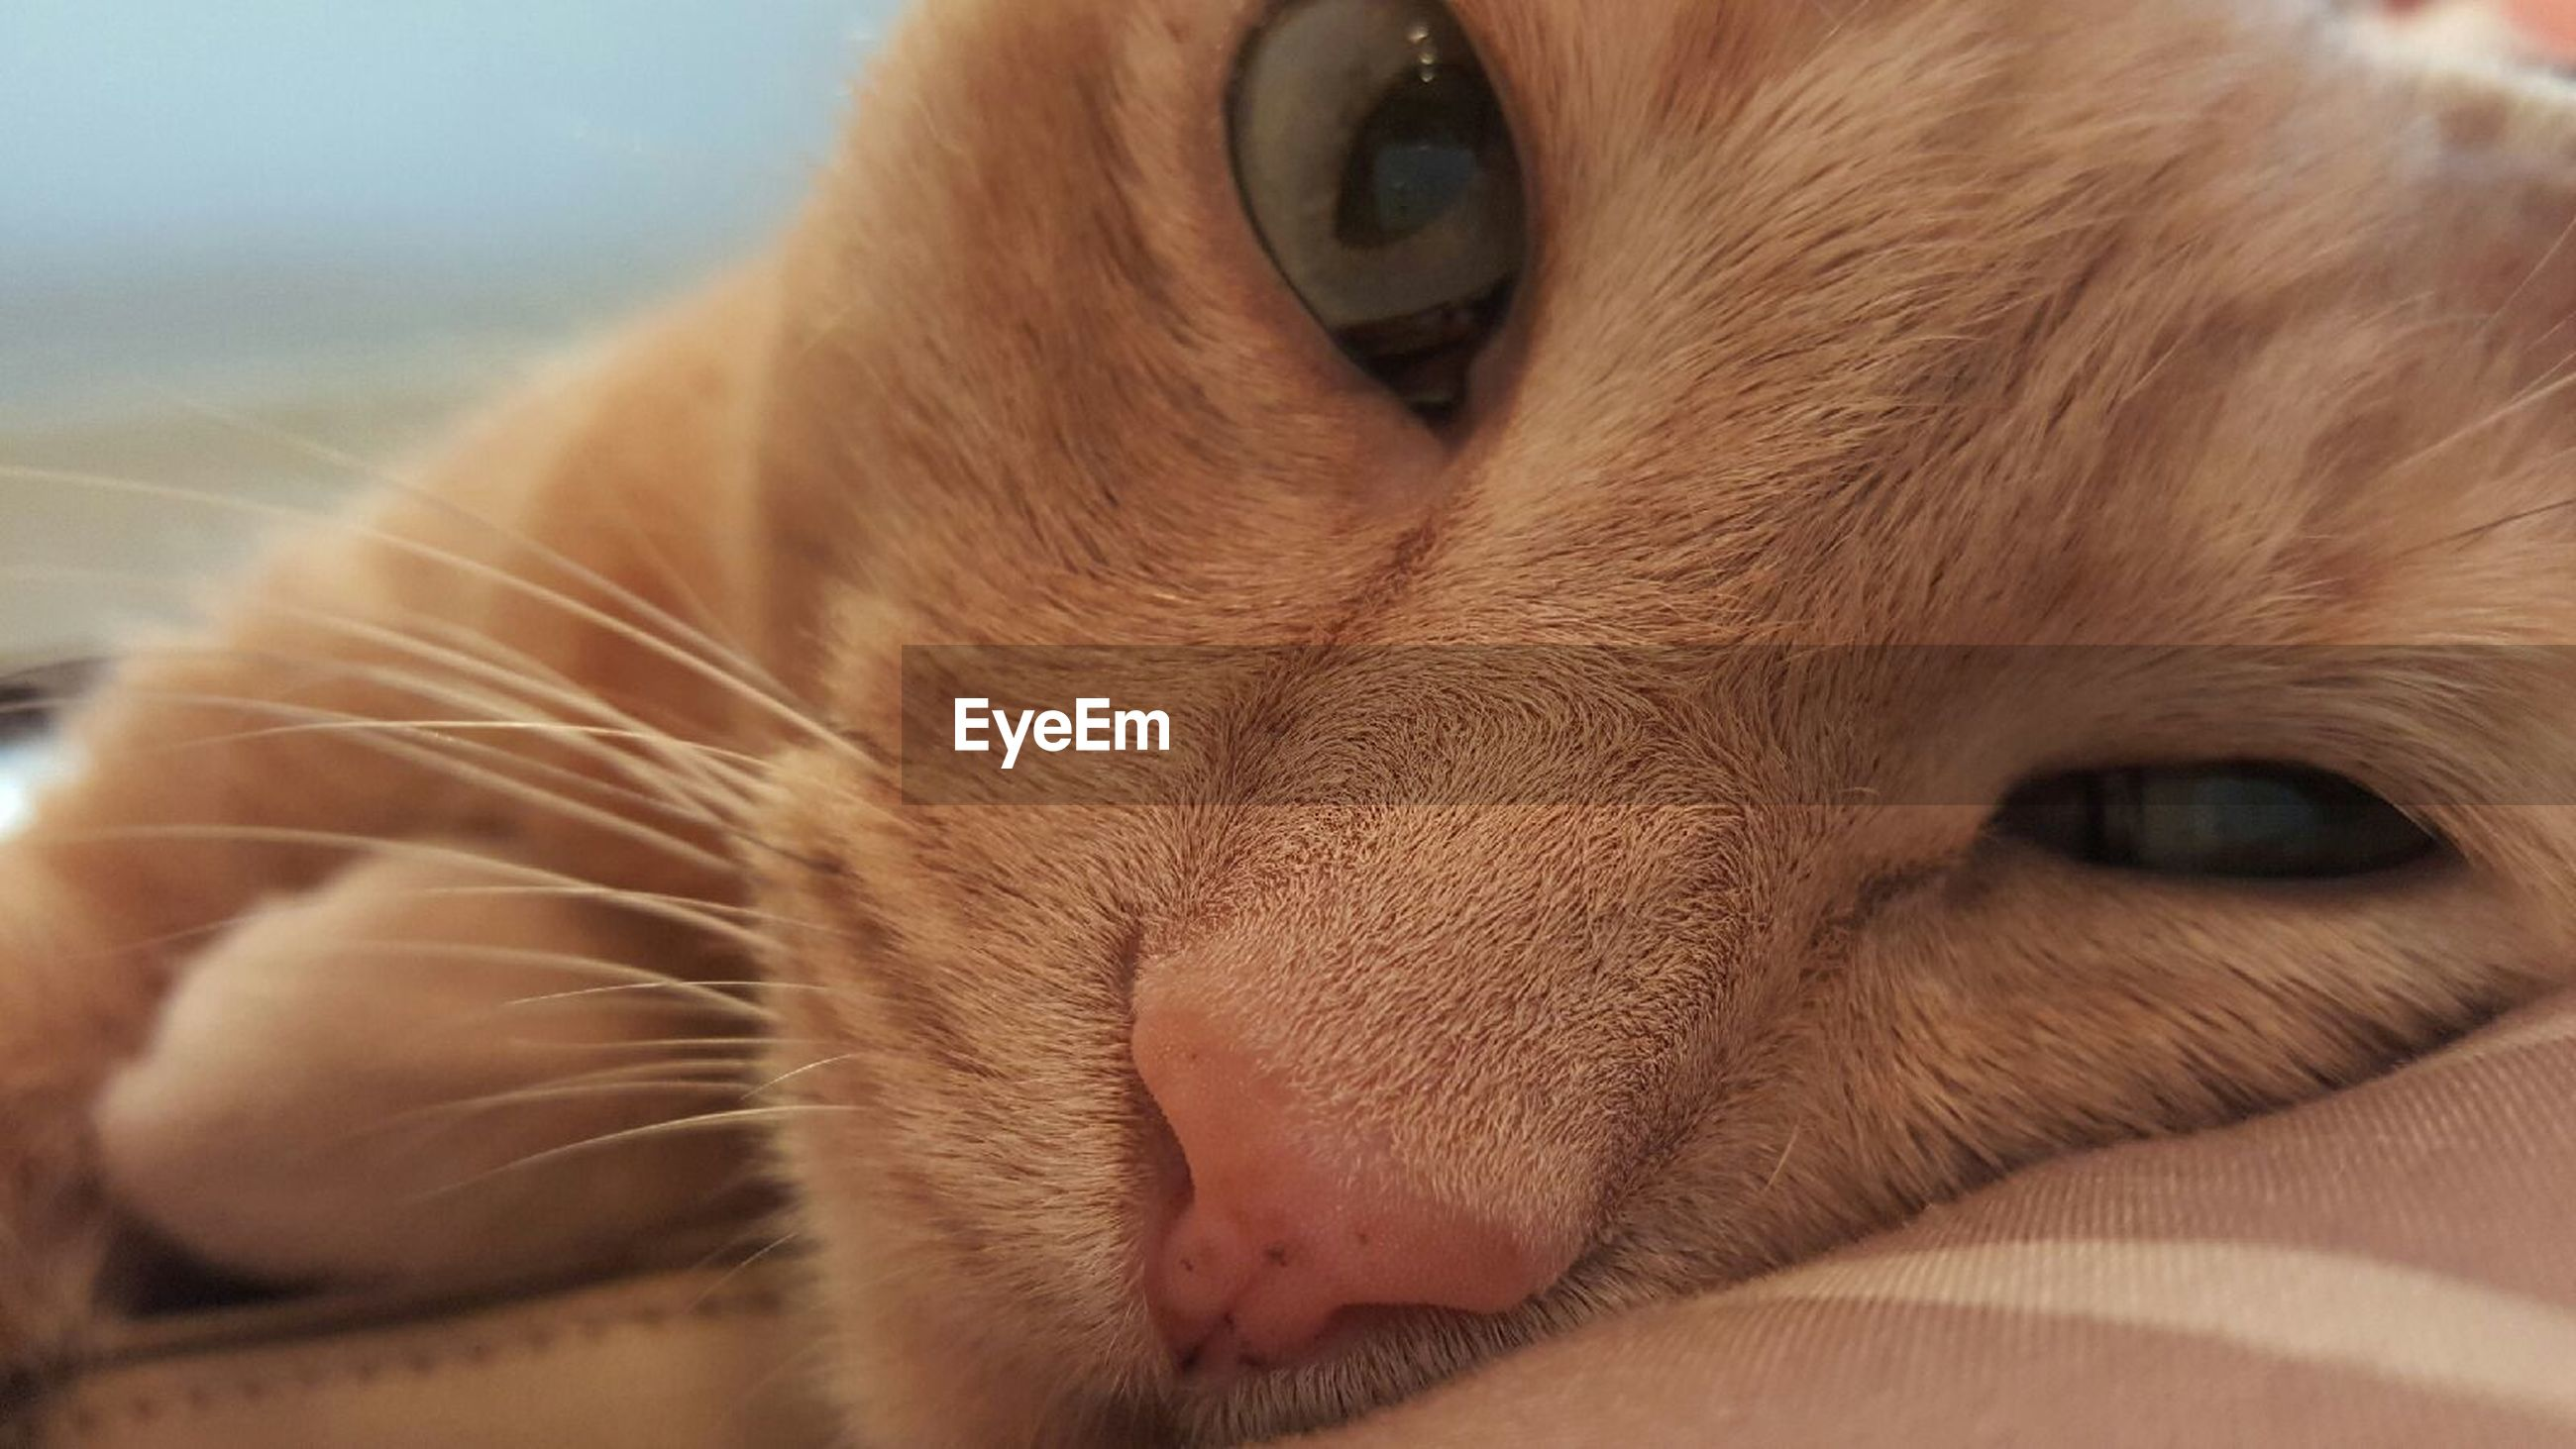 animal themes, domestic animals, one animal, mammal, pets, domestic cat, cat, feline, whisker, animal head, close-up, indoors, animal body part, portrait, animal eye, looking at camera, focus on foreground, relaxation, brown